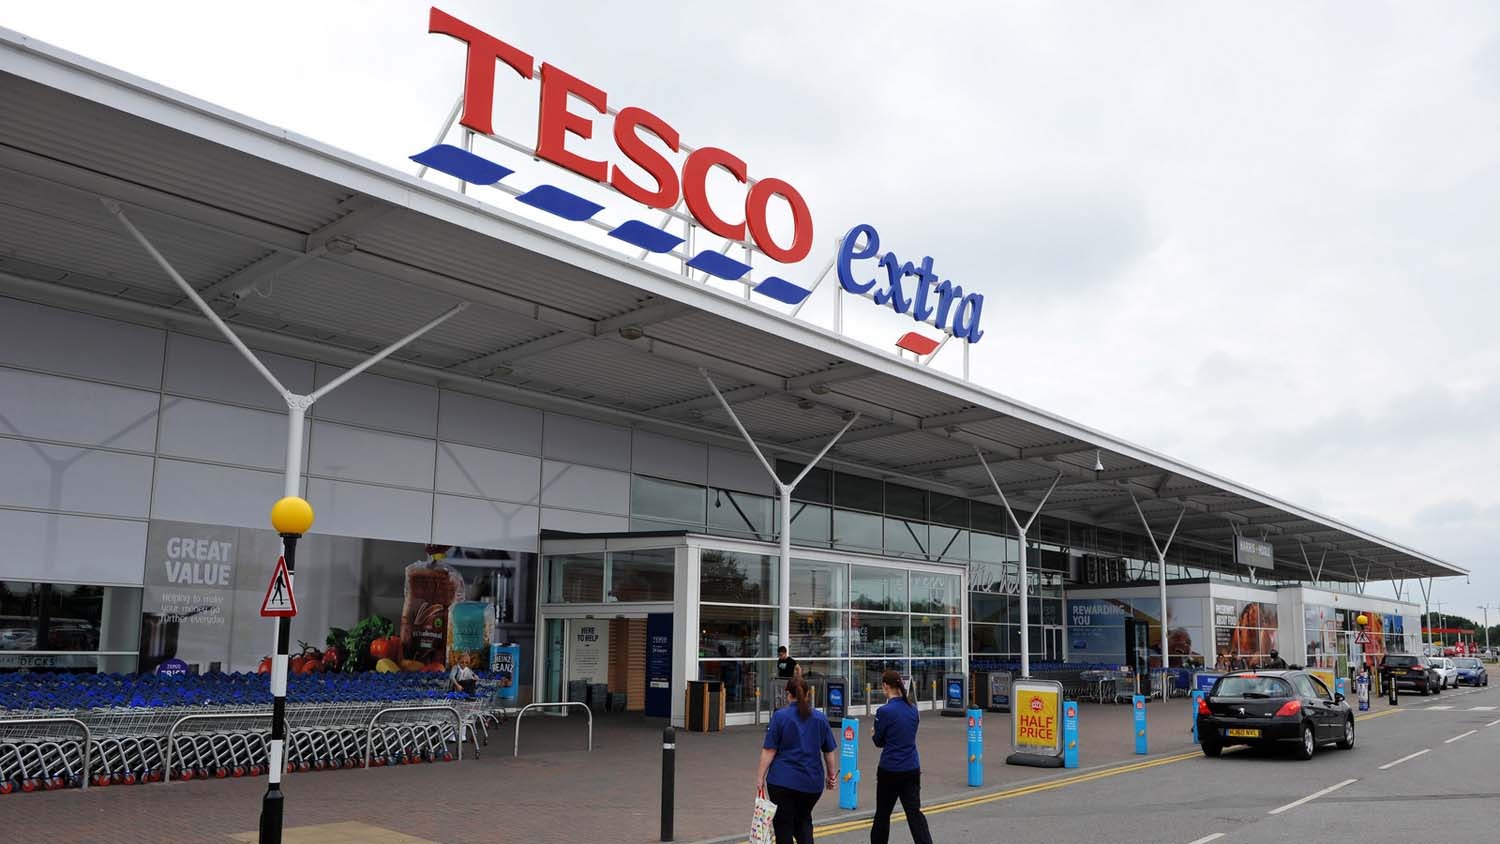 Tesco pressured to improve supplier relations